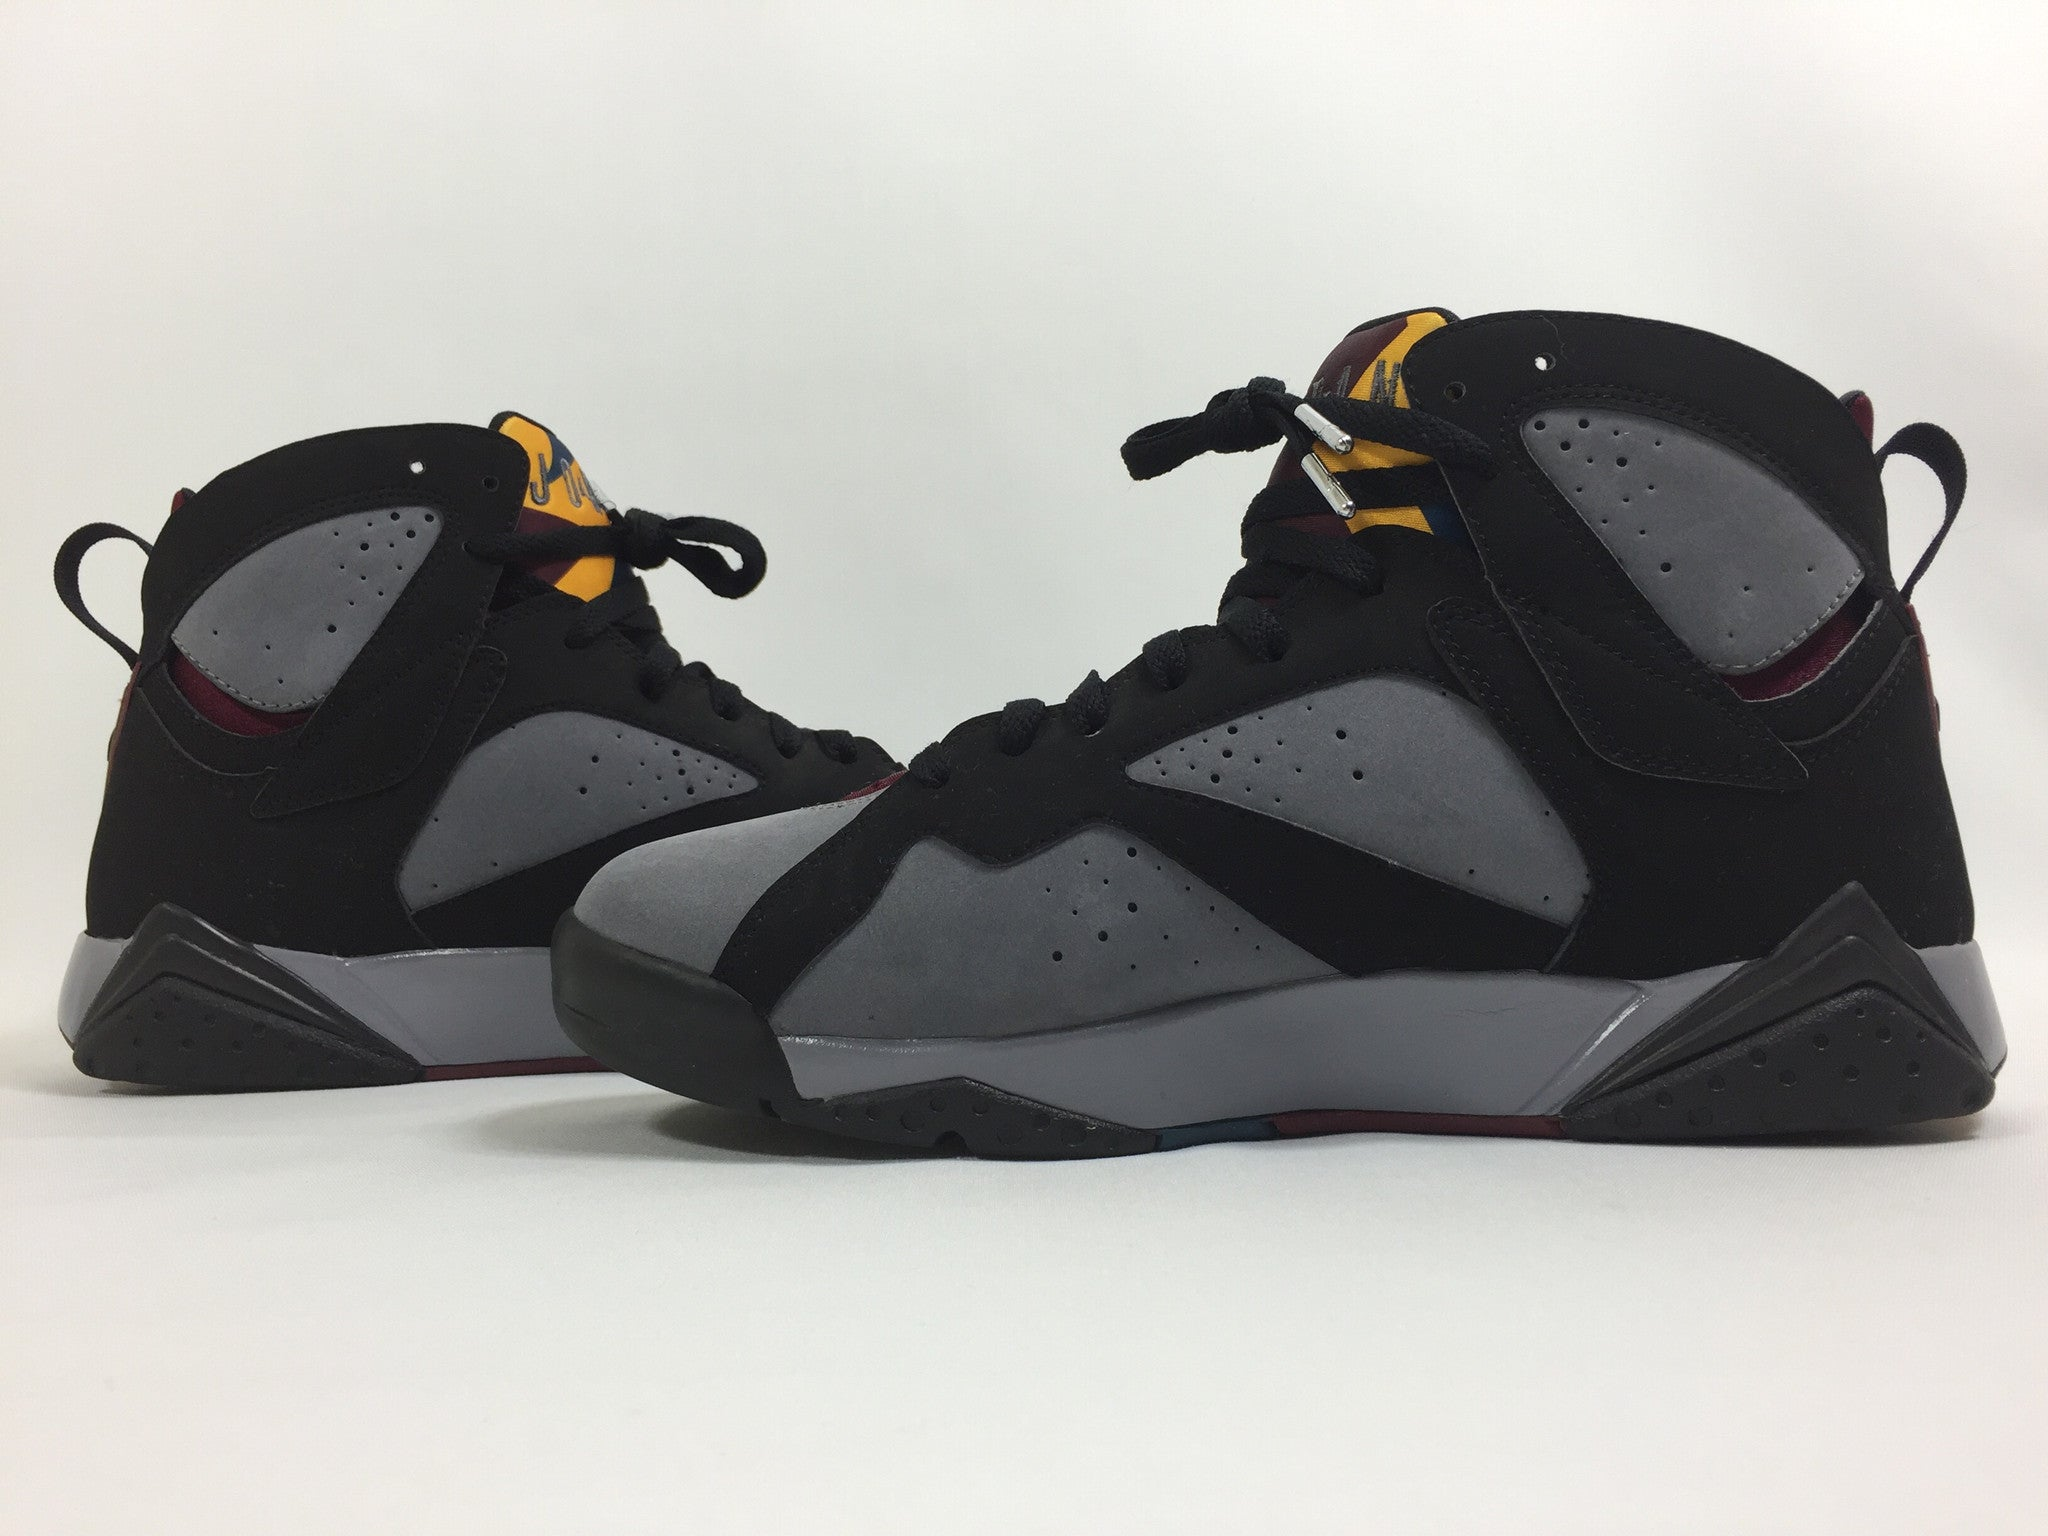 low priced 27f76 05f48 ... inexpensive jordan 7 bordeaux 903dd ce9be inexpensive jordan 7 bordeaux  903dd ce9be  spain nye adidas yeezy boost 350 ...